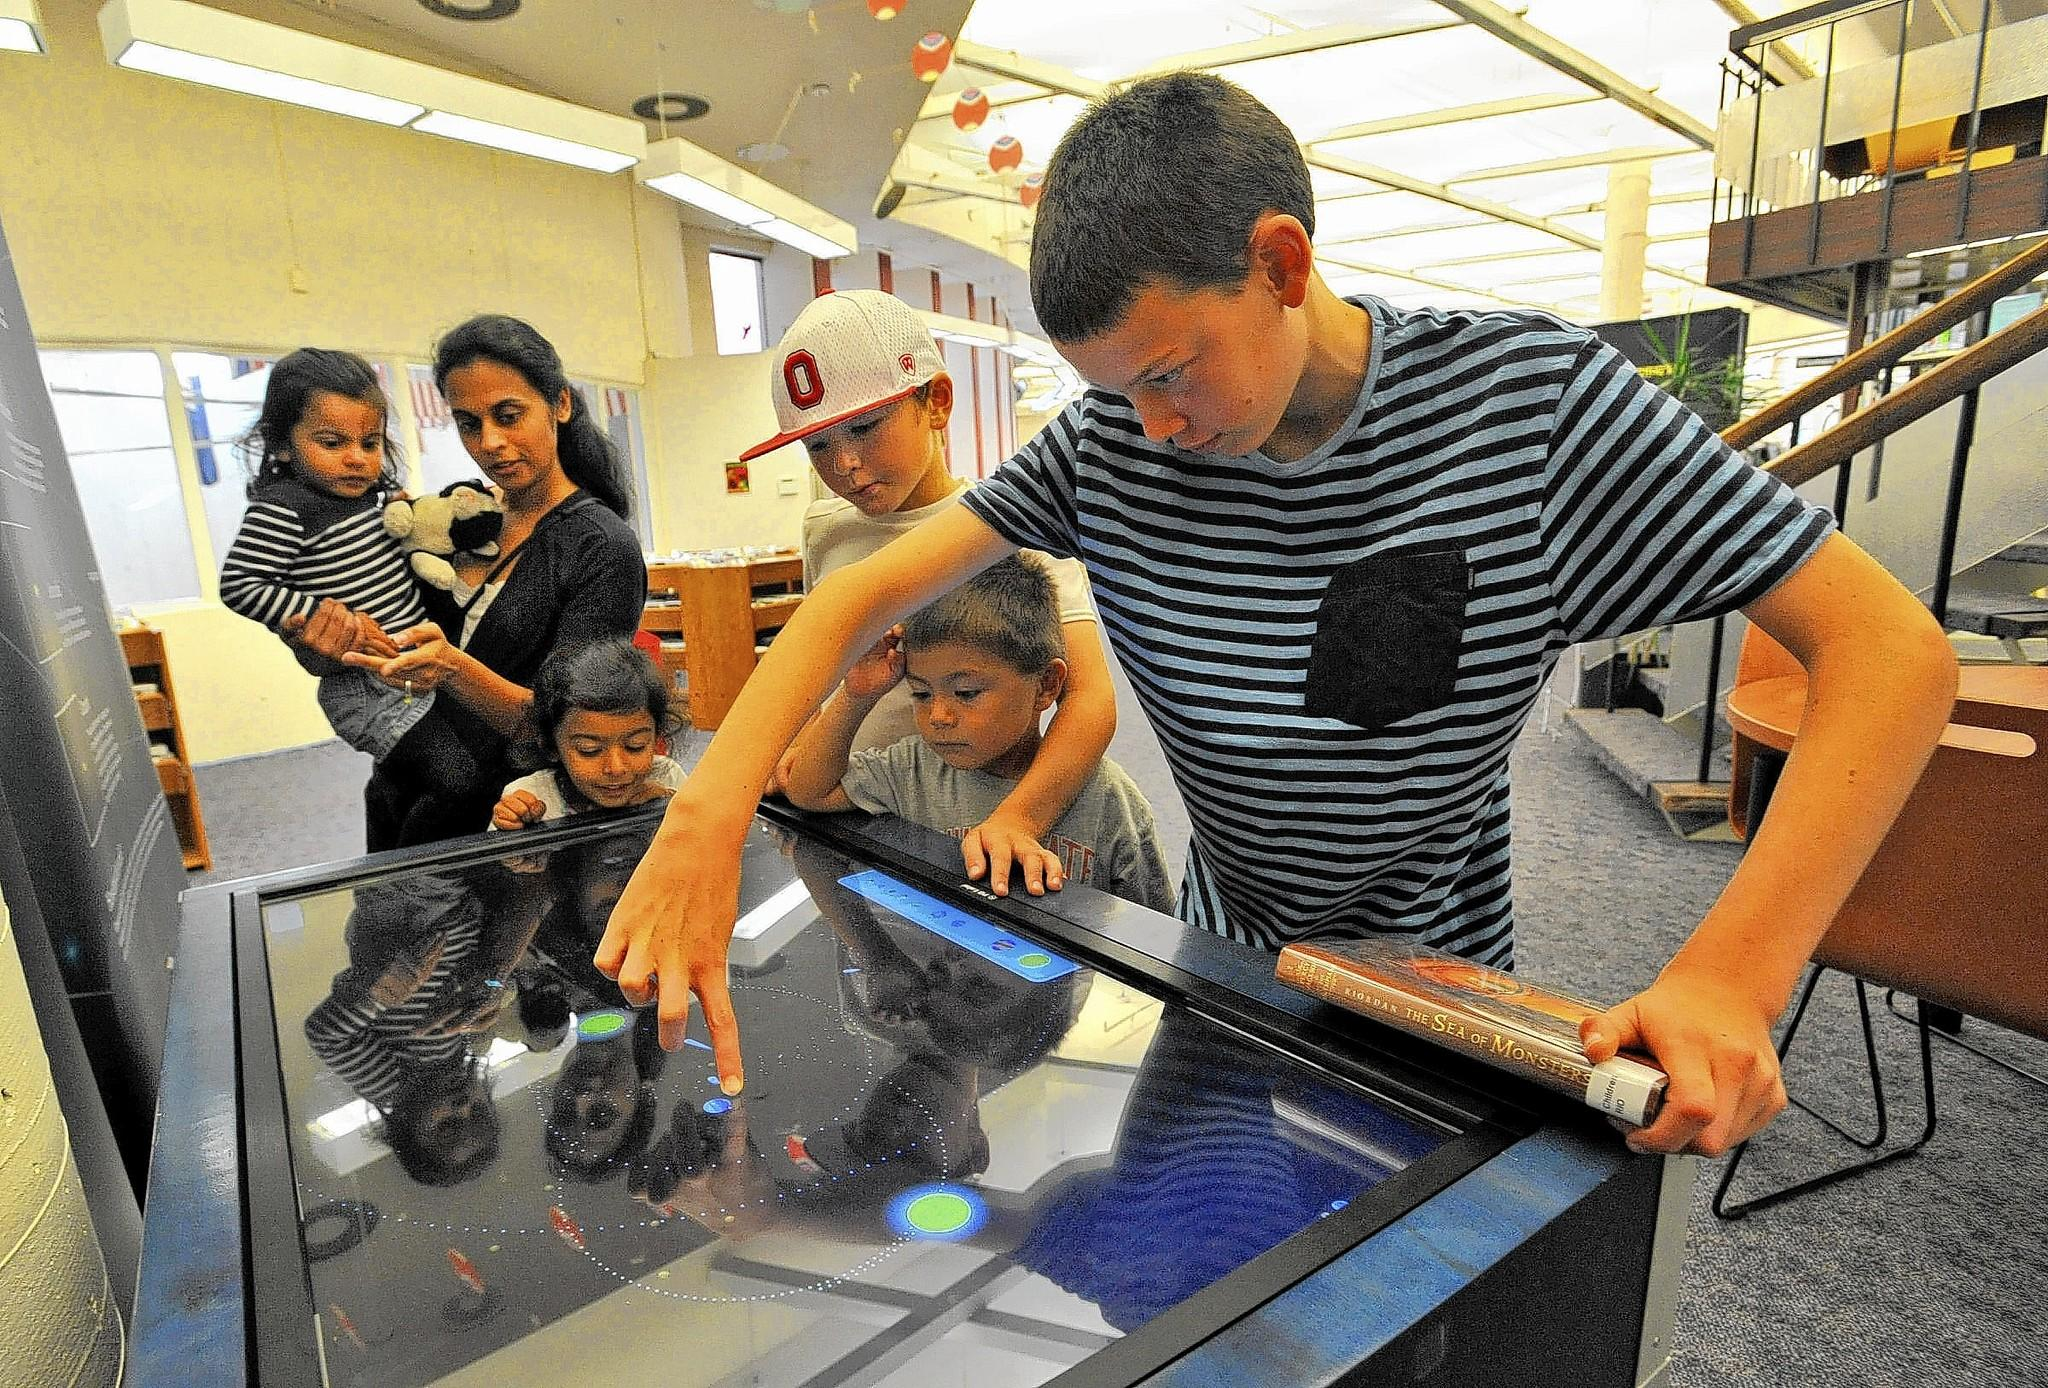 Discover Space is a three-part, interactive learning exhibit presented by the Space Science Institute.